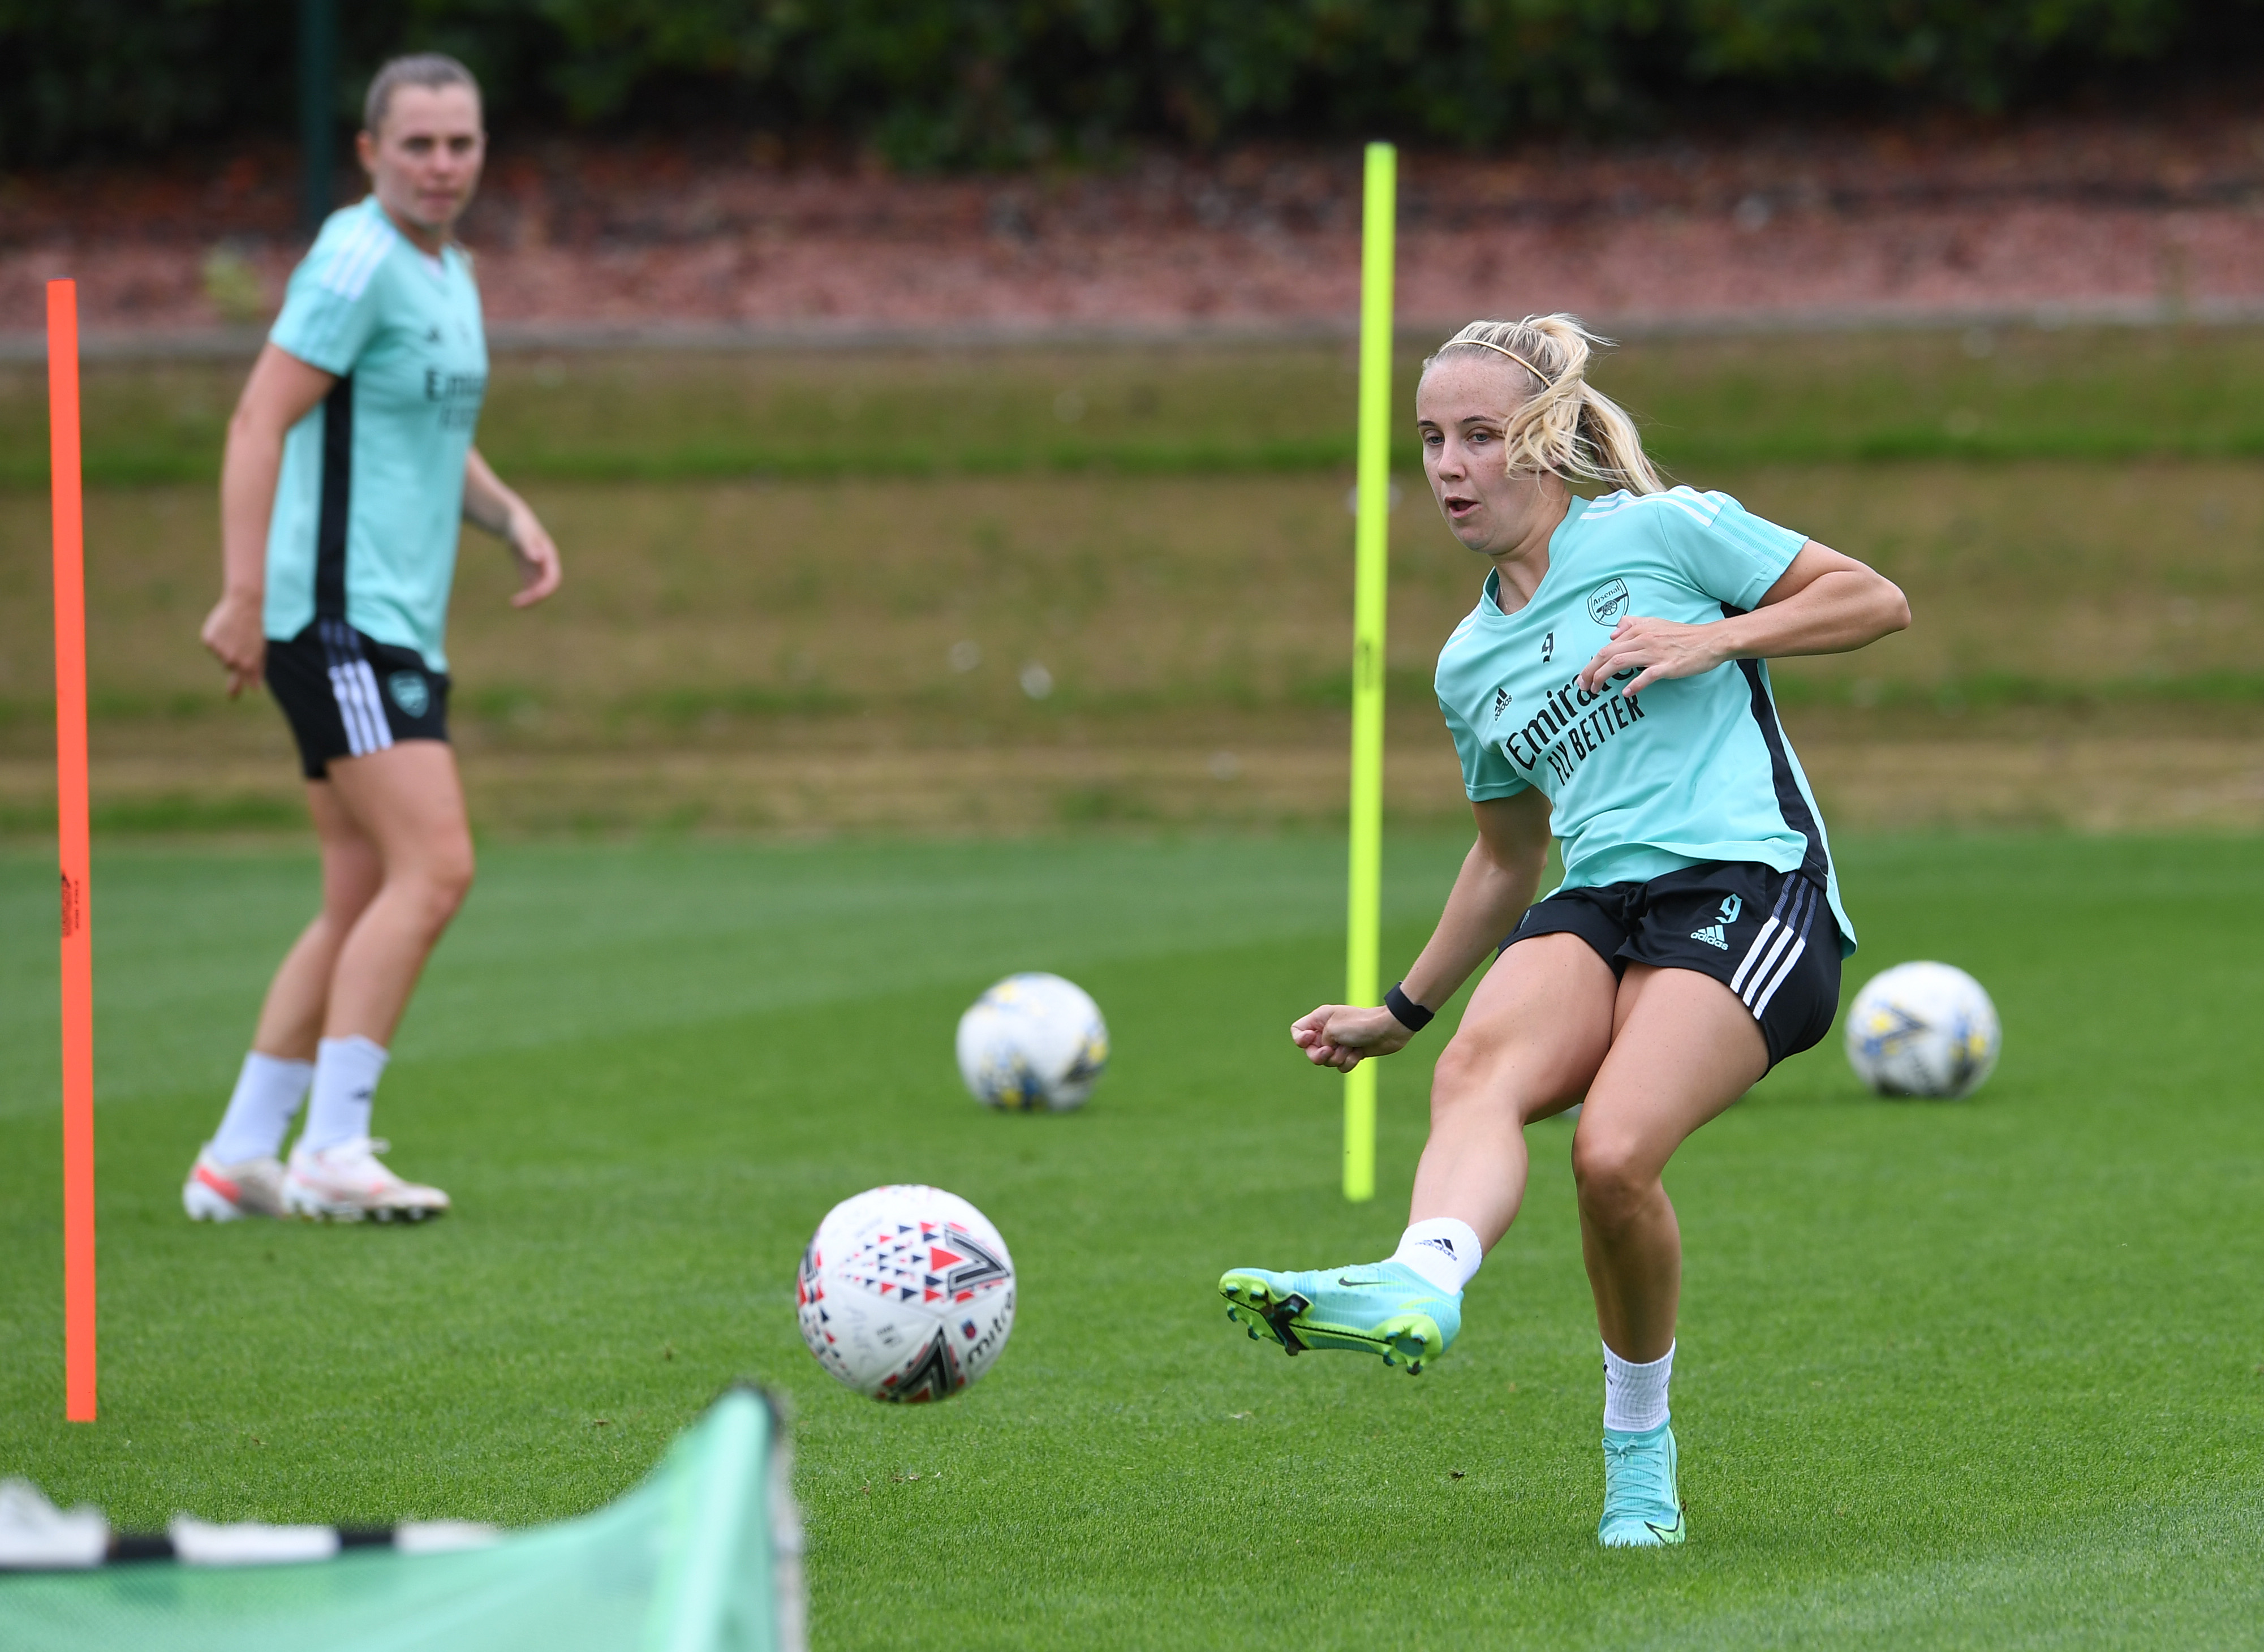 <p>ST ALBANS, ENGLAND - JULY 12: Beth Mead of Arsenal during the Arsenal Women training session at London Colney on July 12, 2021 in St Albans, England. (Photo by David Price/Arsenal FC via Getty Images)</p>